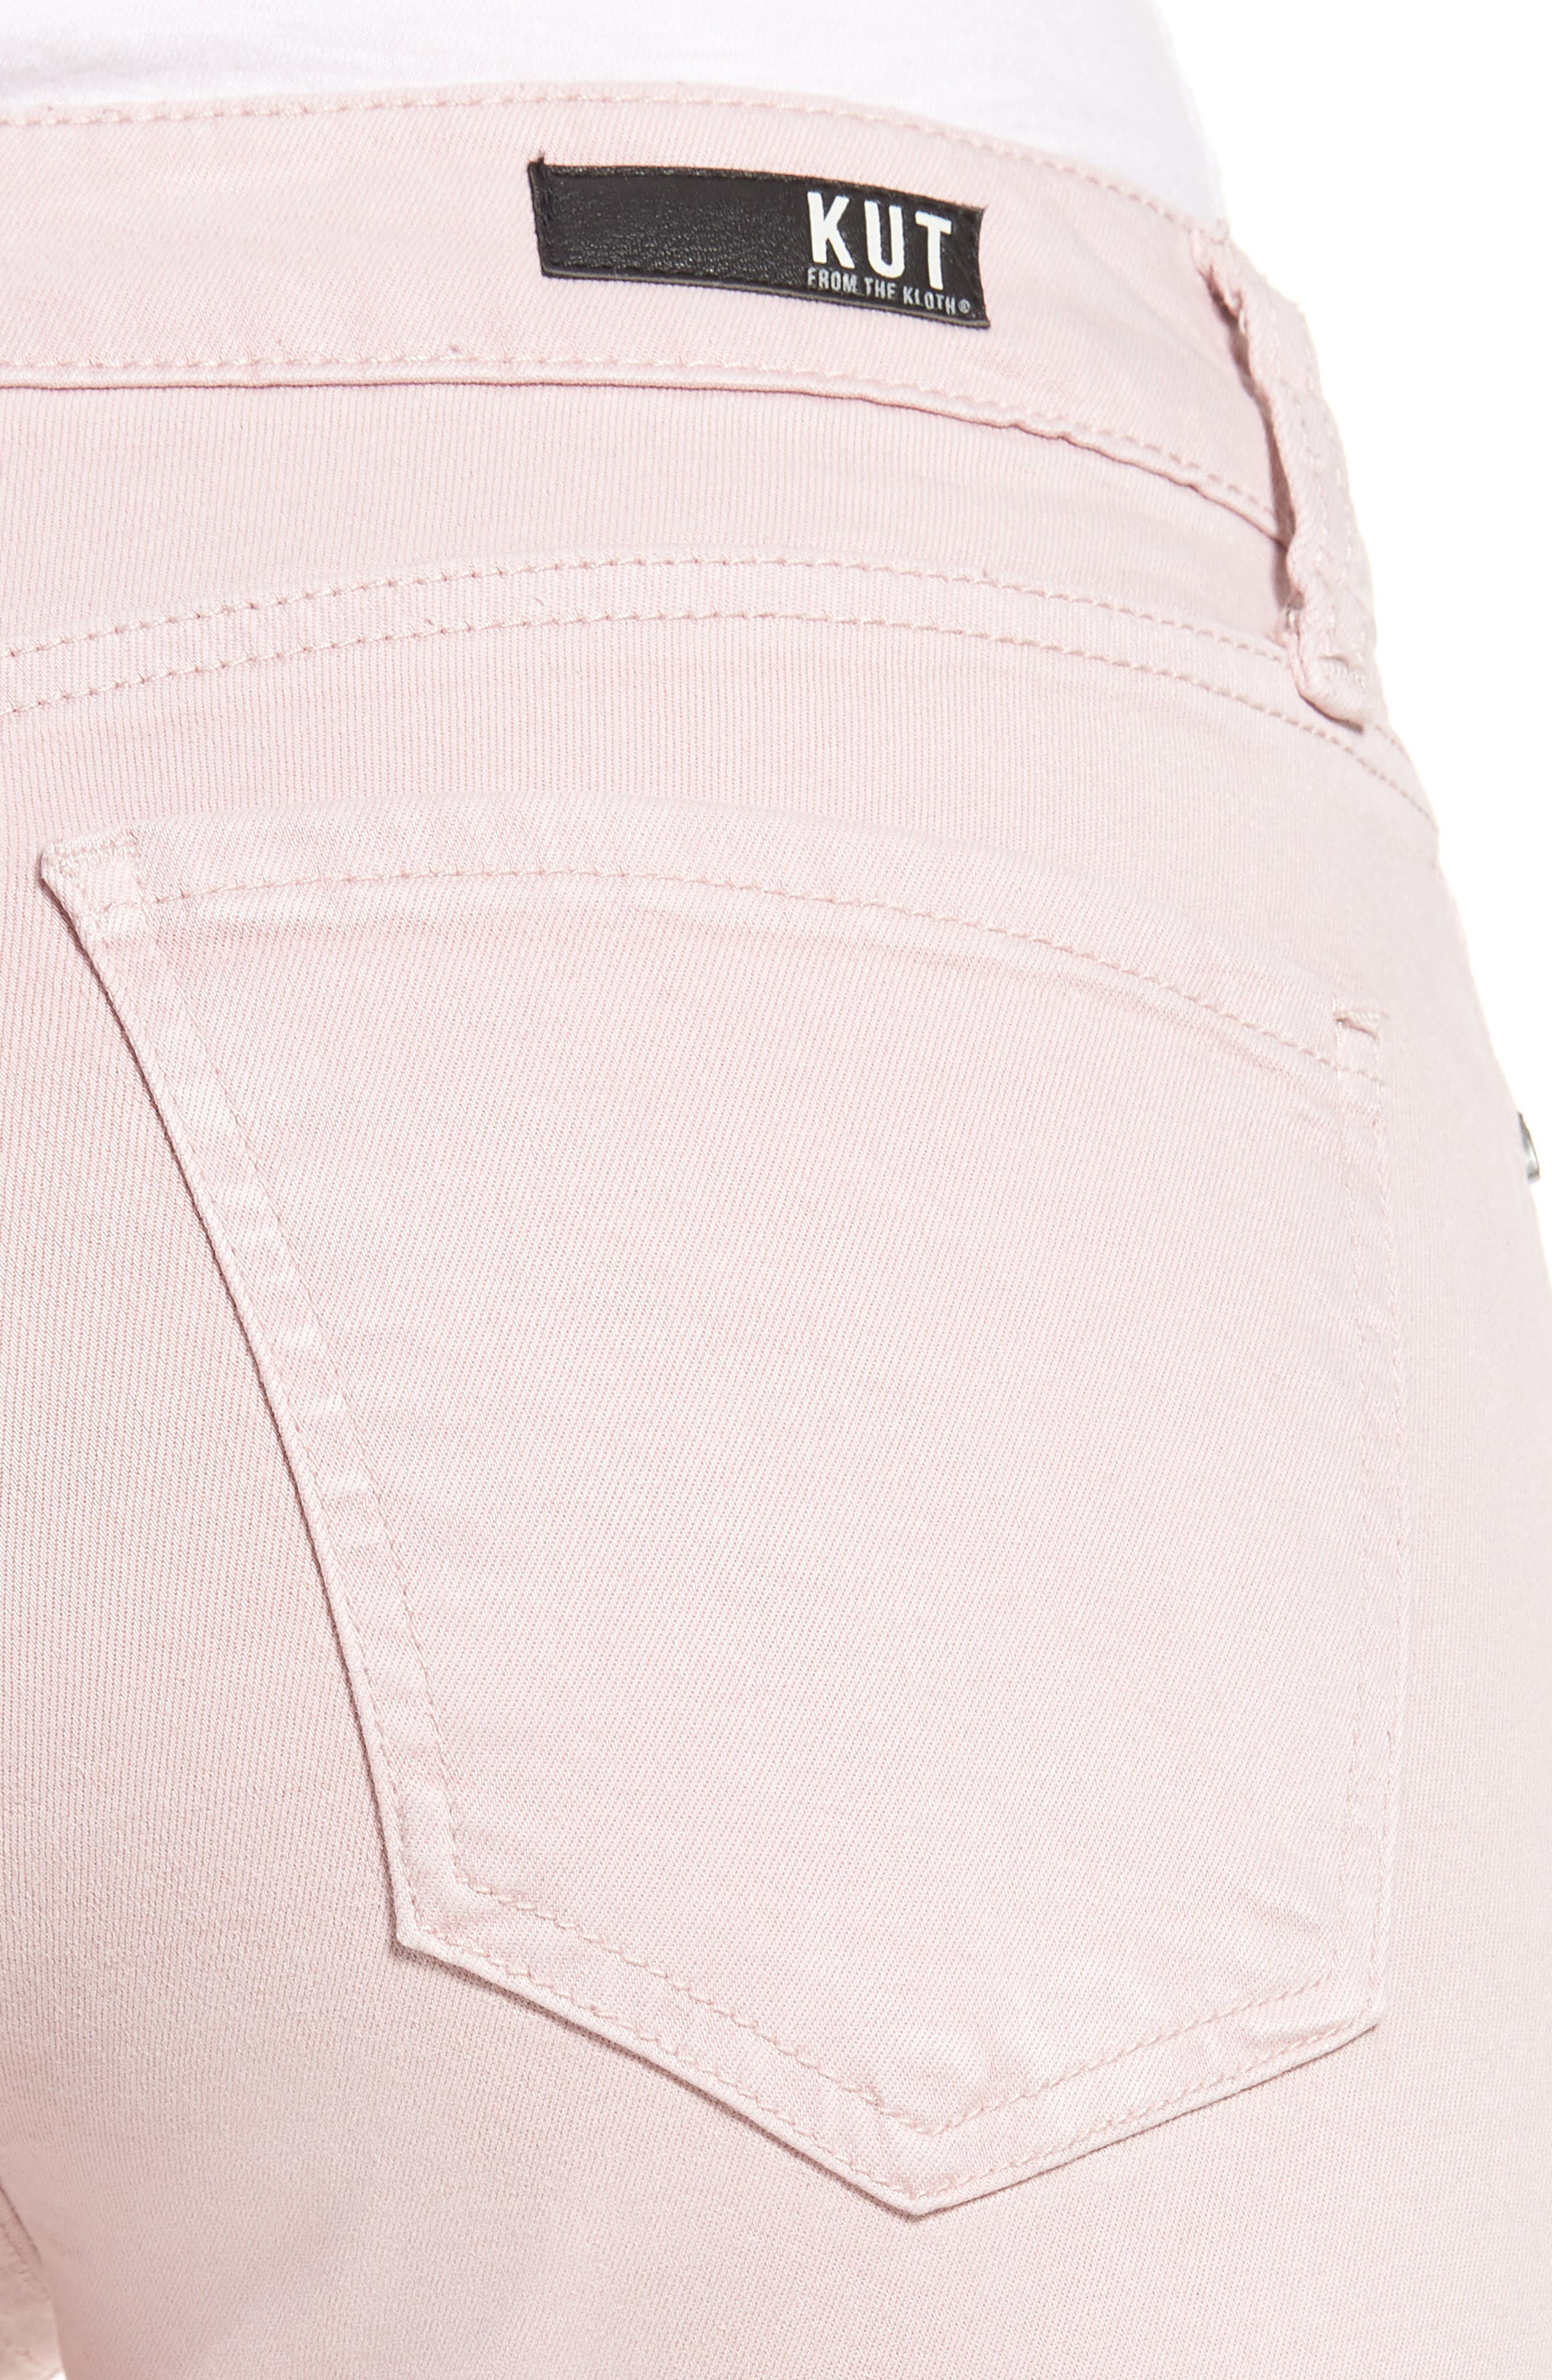 KUT from the Kloth Amy Crop Skinny Jeans,                             Alternate thumbnail 4, color,                             682